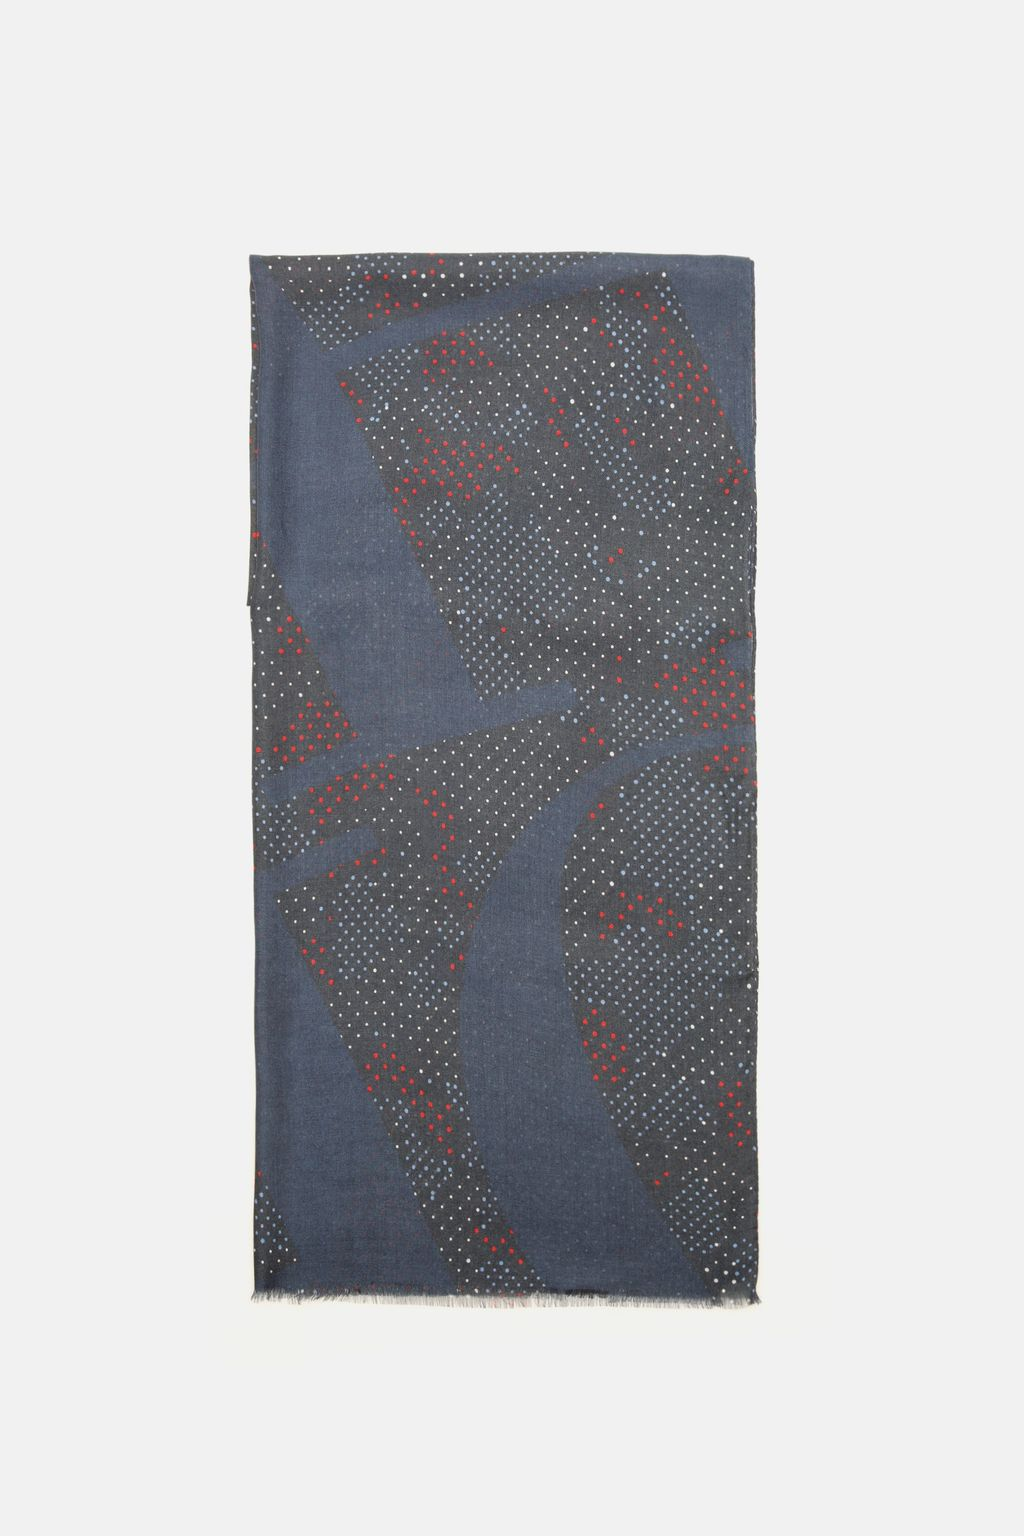 Camouflage modal pashmina with polka dots